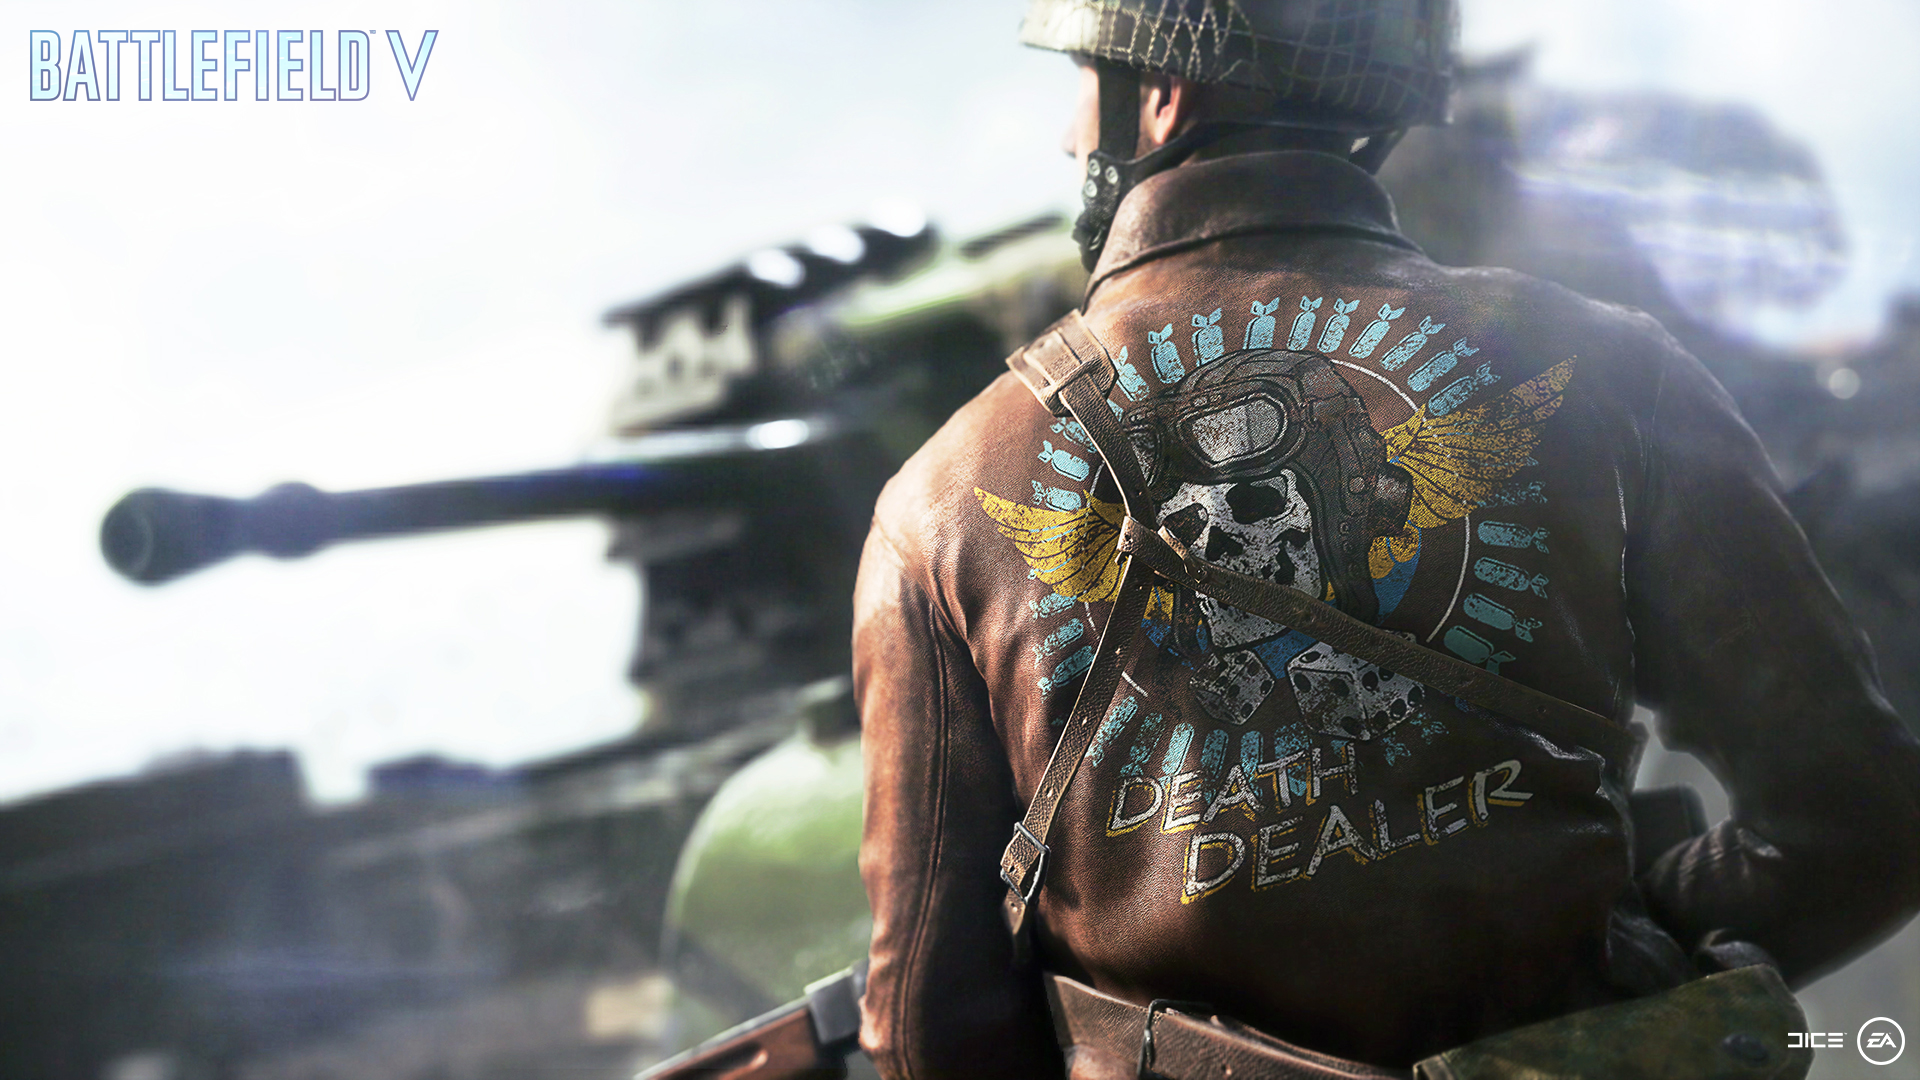 battlefield v interview will there be battle royale or micro